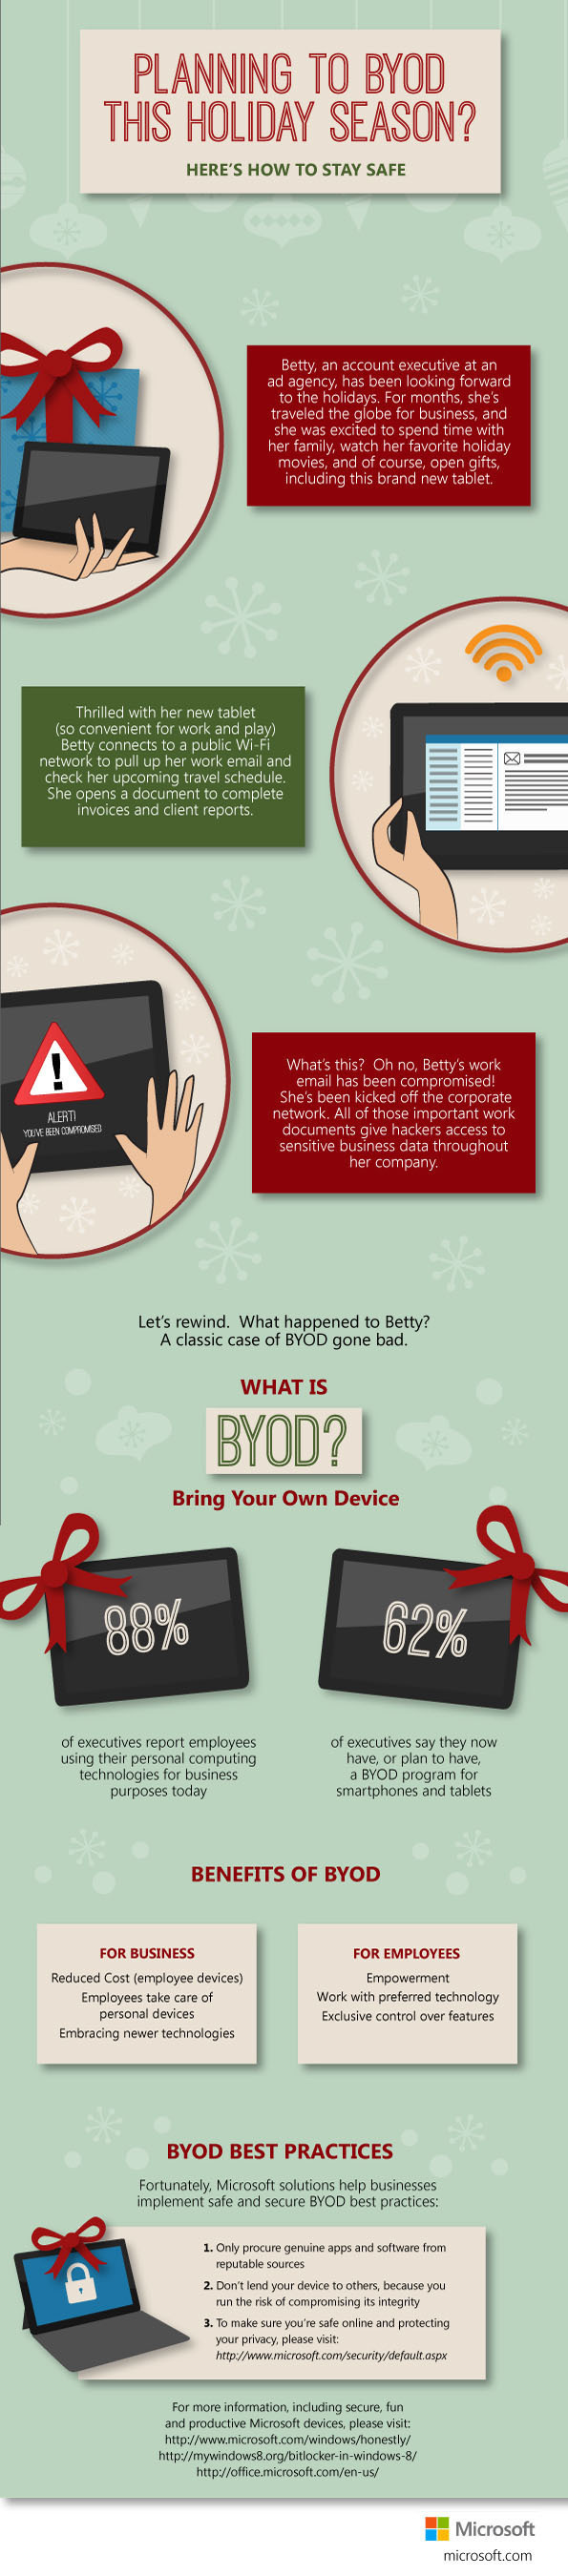 With the holidays fast approaching, many enterprise workers will receive new tech gadgets this season, which ...